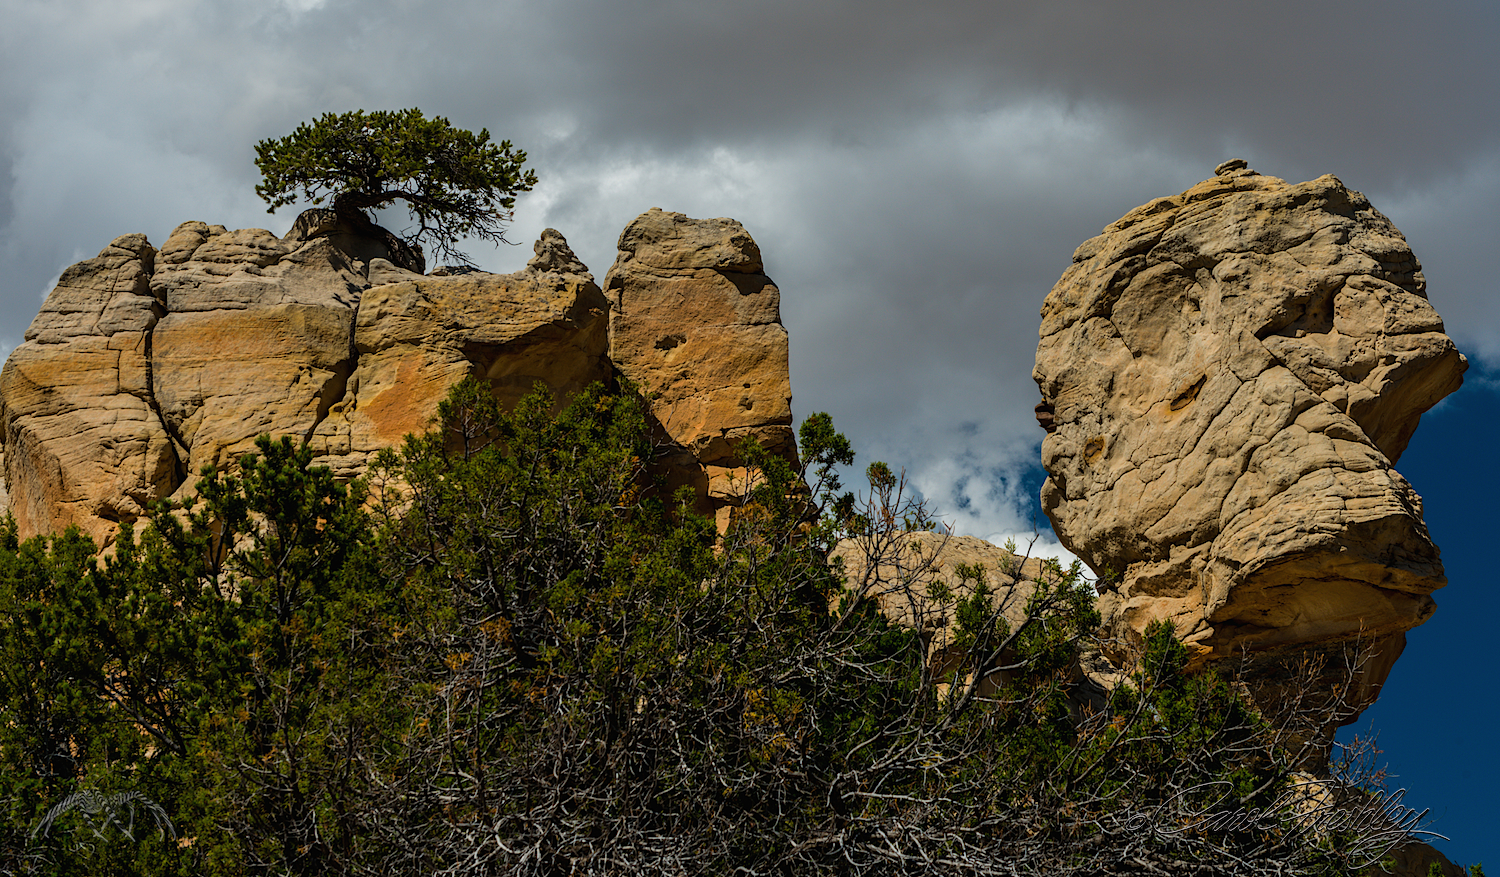 Better than Balancing Rock at Arches National Park. I'll bet Nancy can make a famous person's face out of this one.